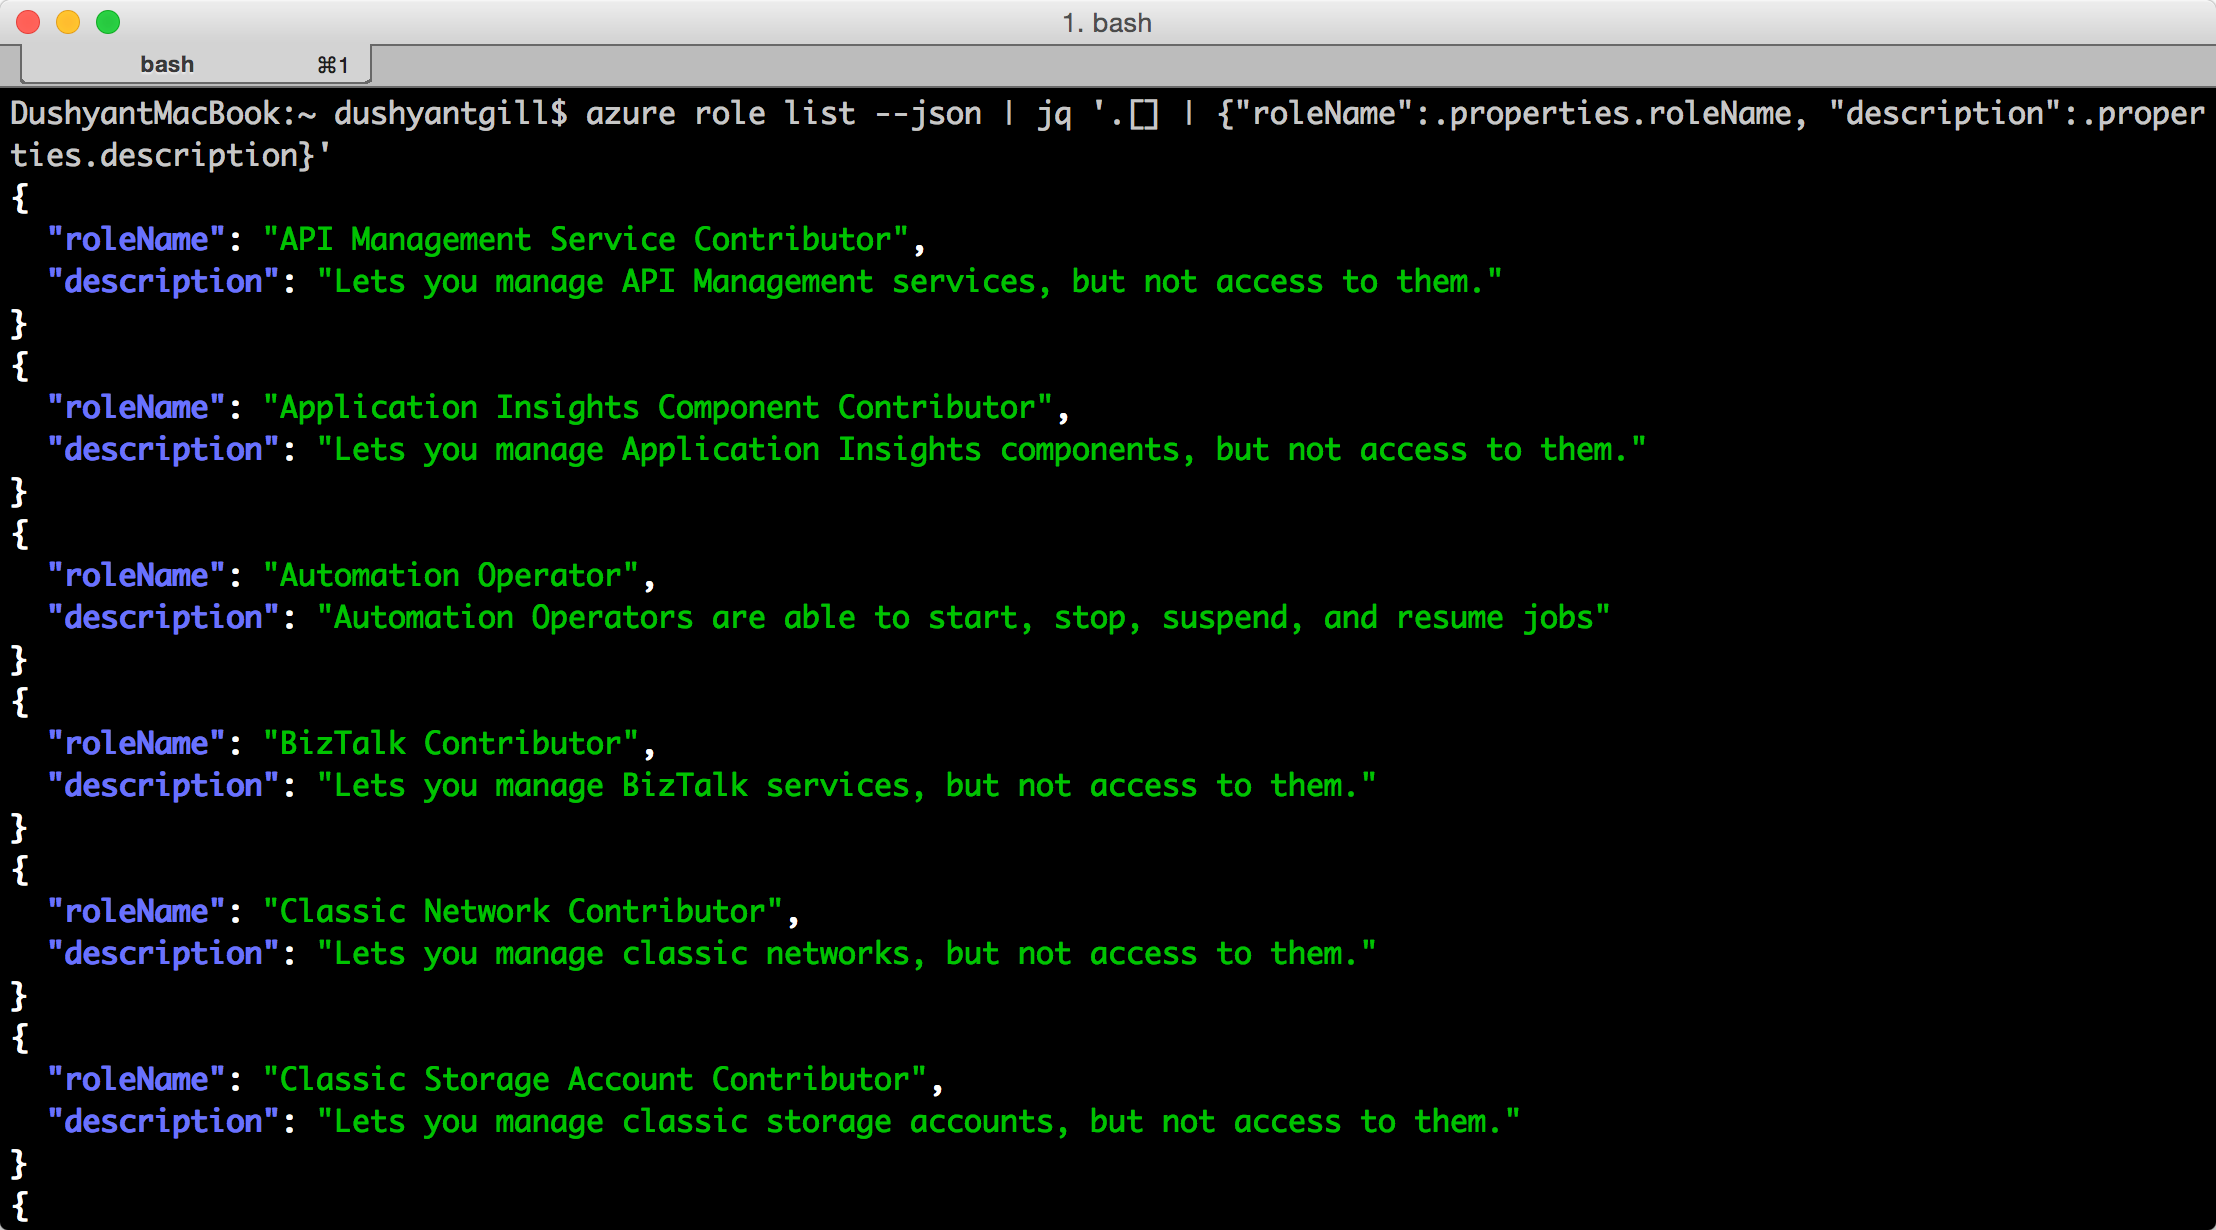 How To Use The Network Service Account To Access - Rbac azure command line azure role list screenshot